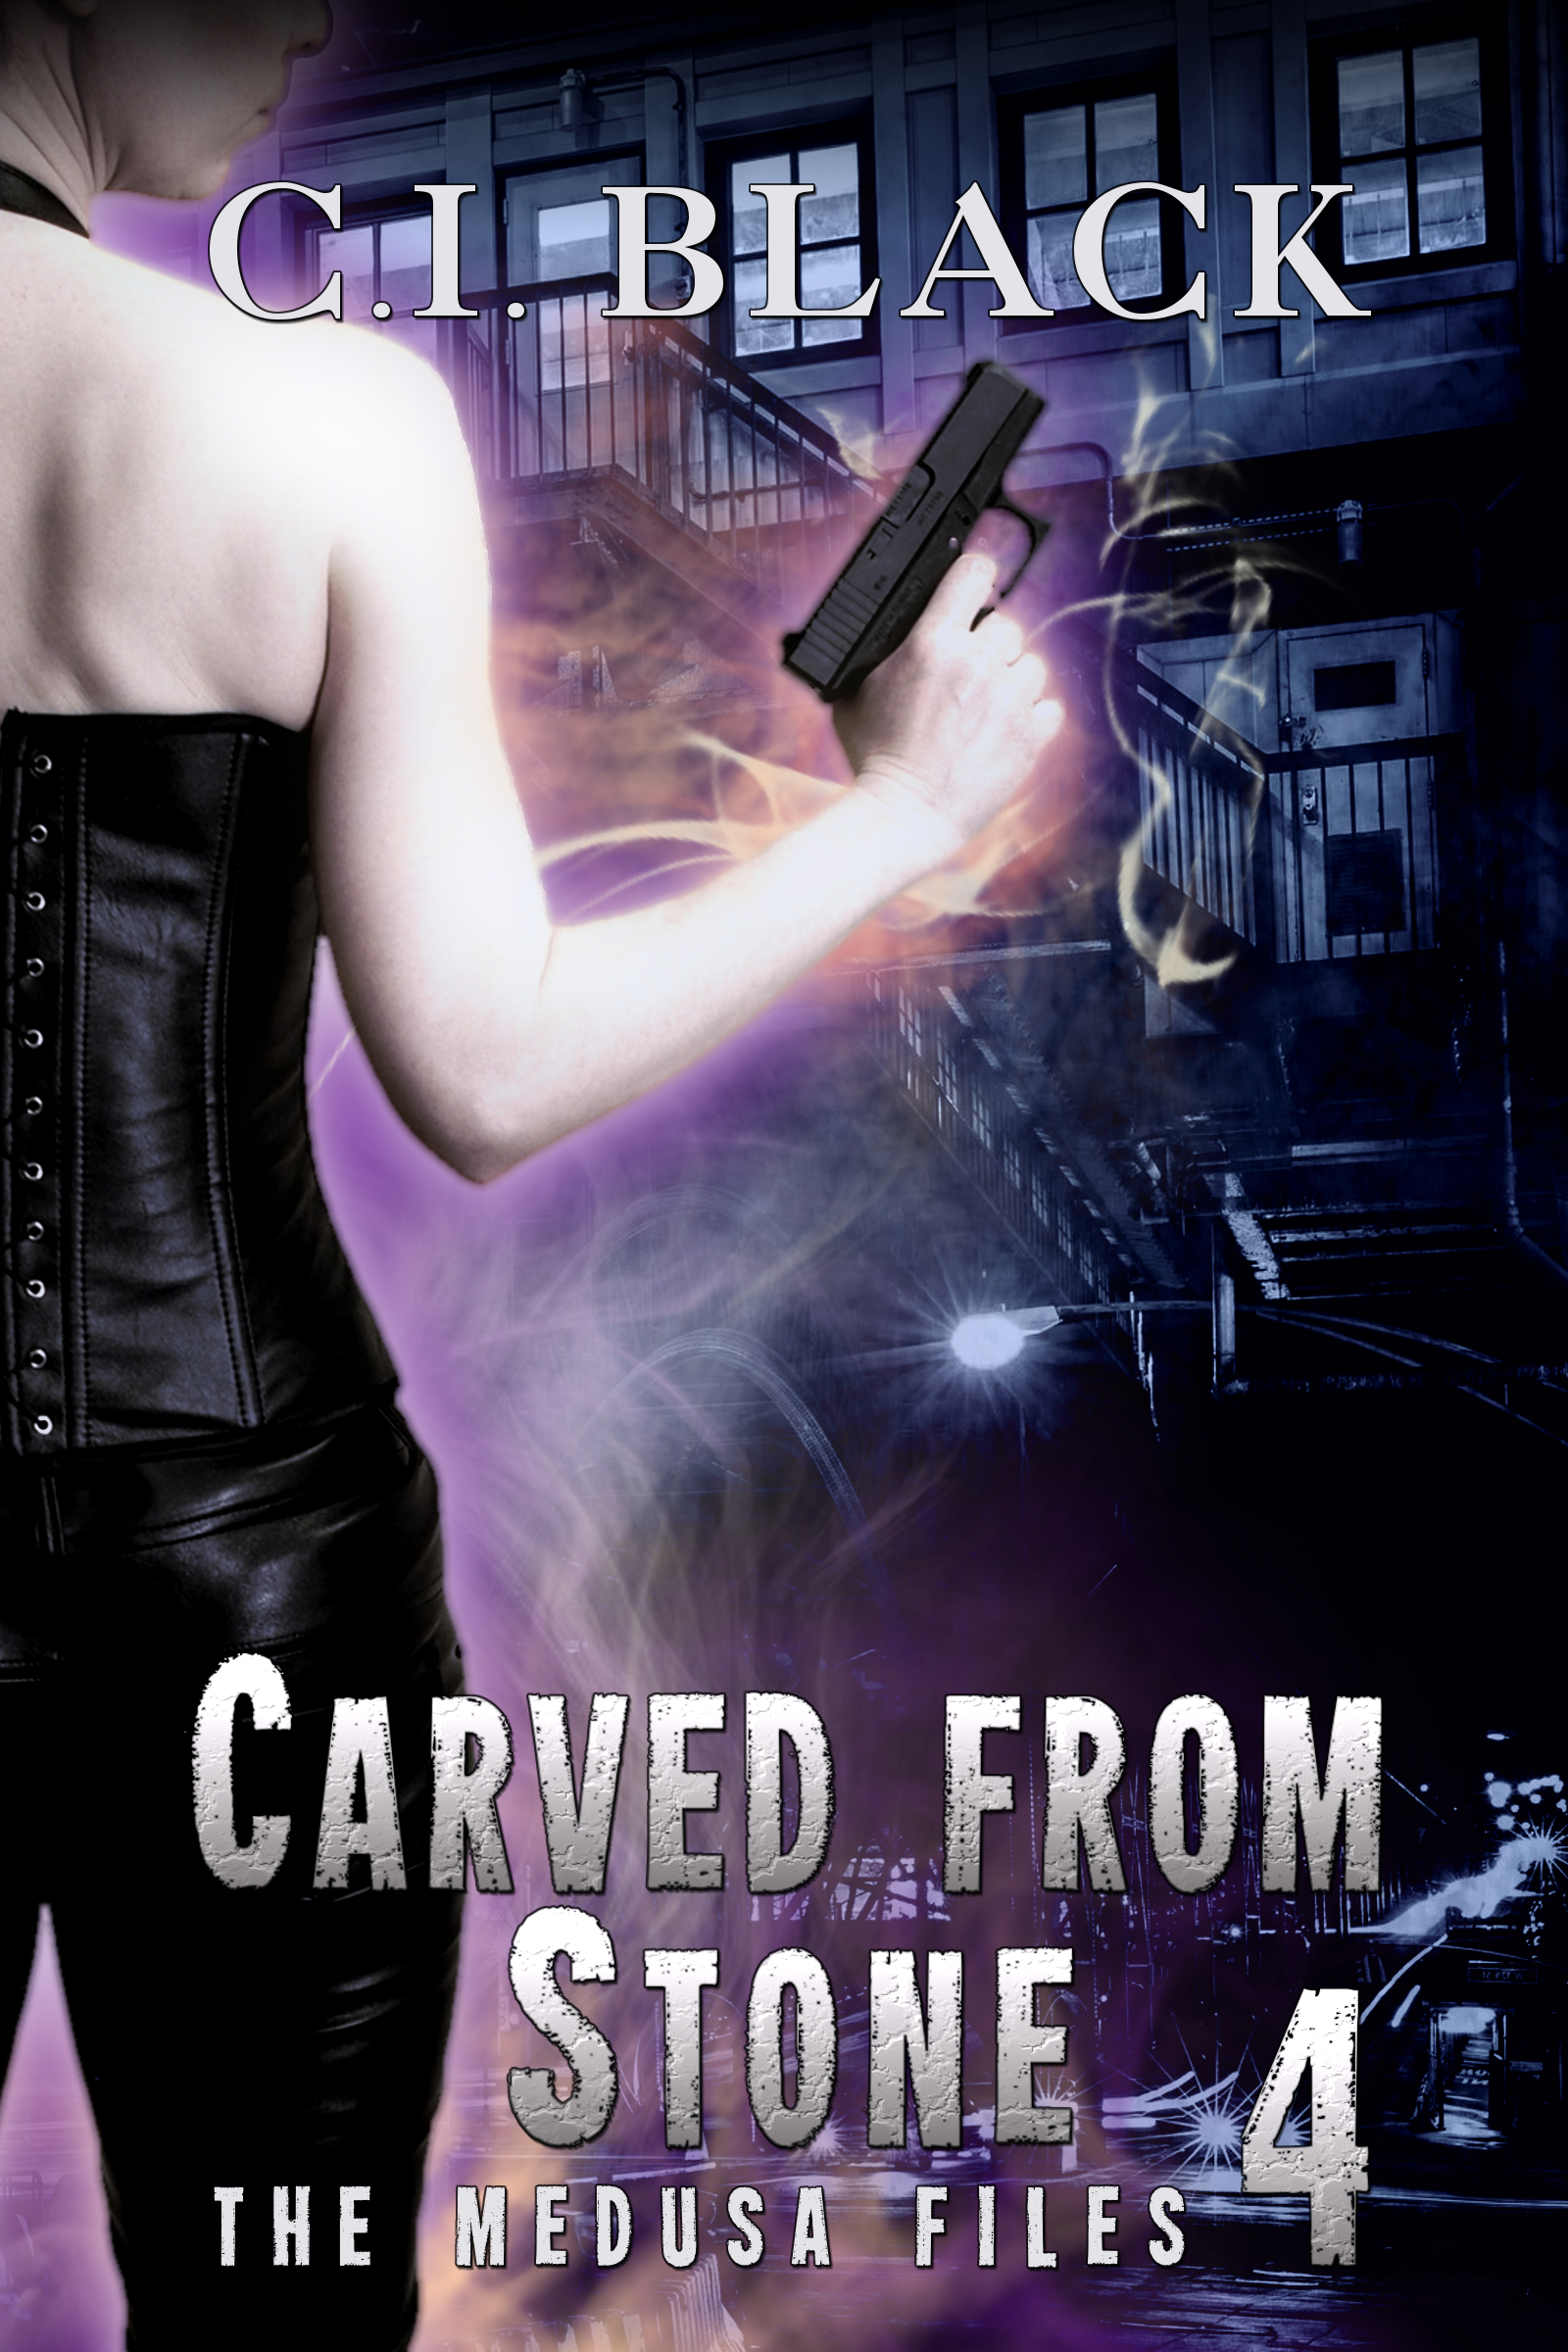 The Medusa Files, case 4: Carved From Stone, an urban fantasy / paranormal romance and the fourth book in the Medusa Files series by C.I. Black